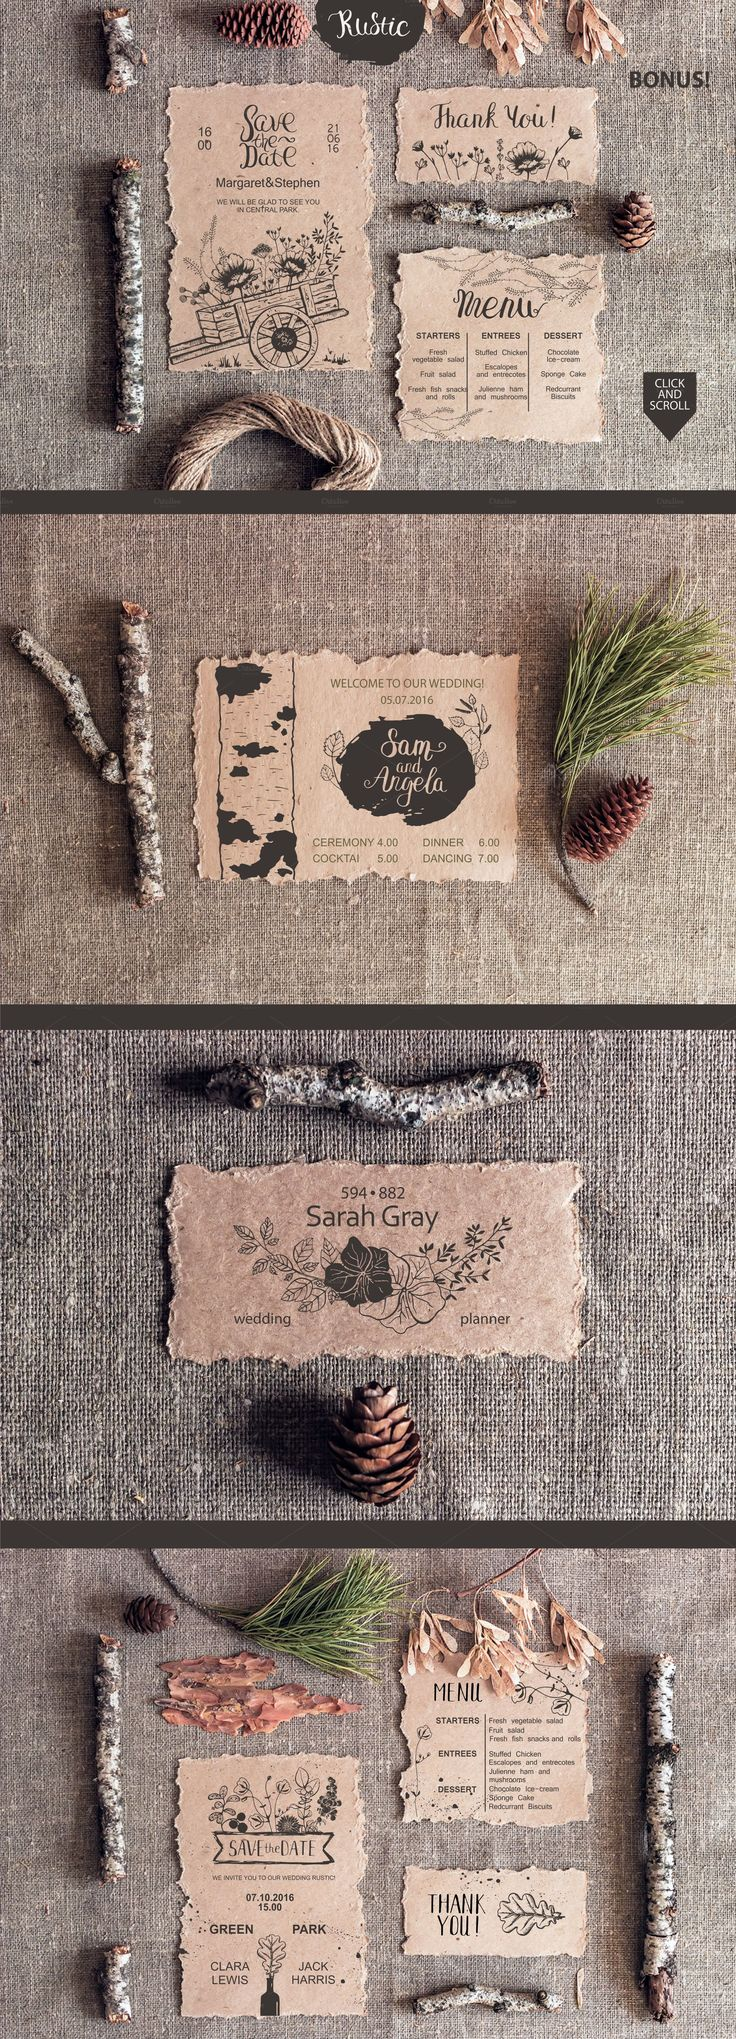 Rustic wedding collection: wedding invitations, menus, thank you cards and 29 vector files.